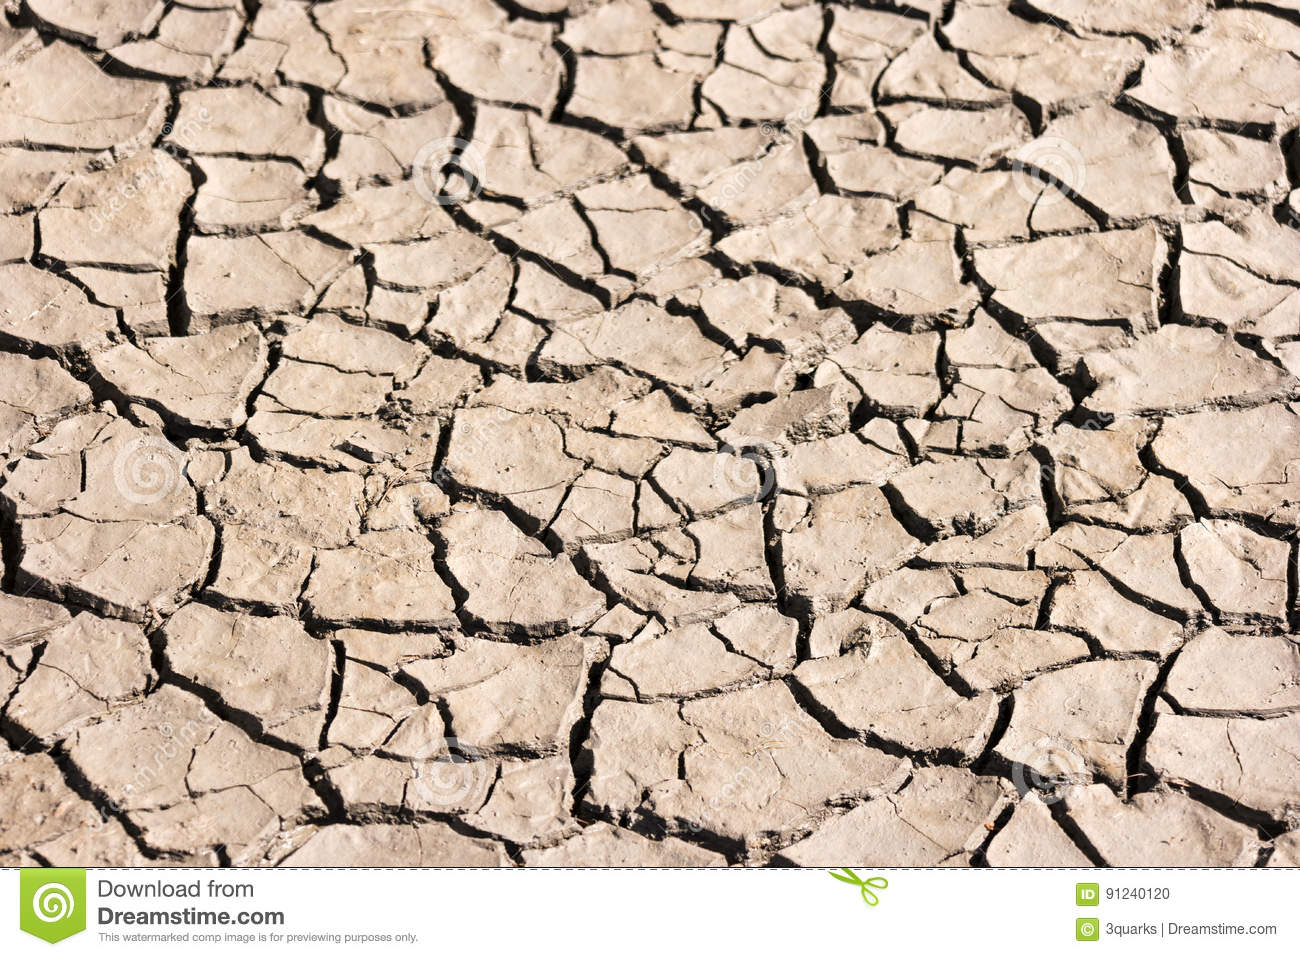 Dried Soil of a Mud Flat